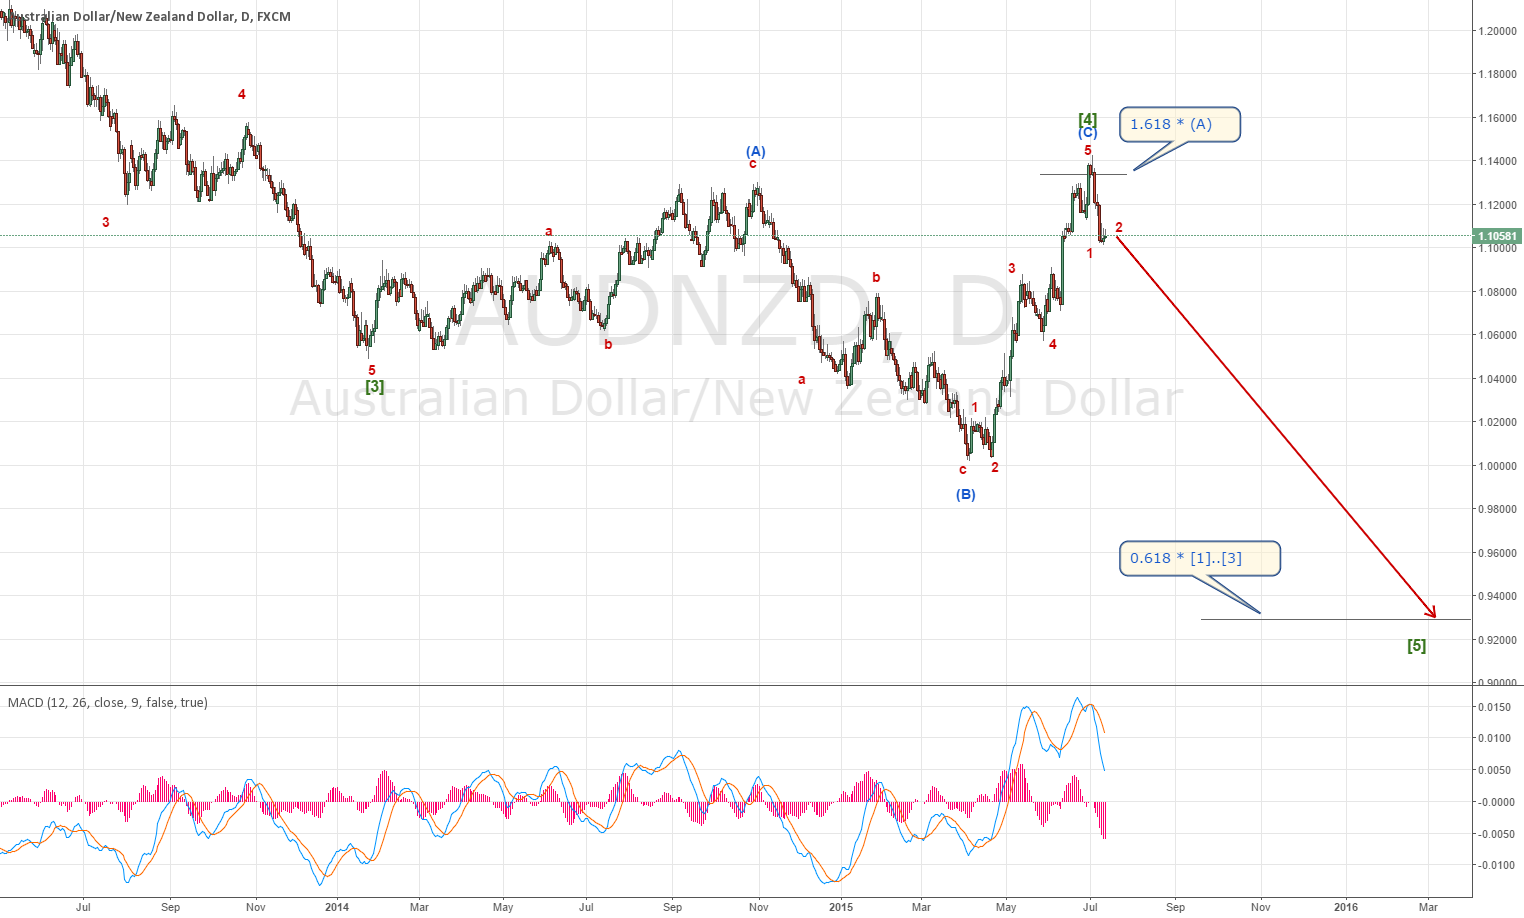 AUDNZD reversed as planned, going down